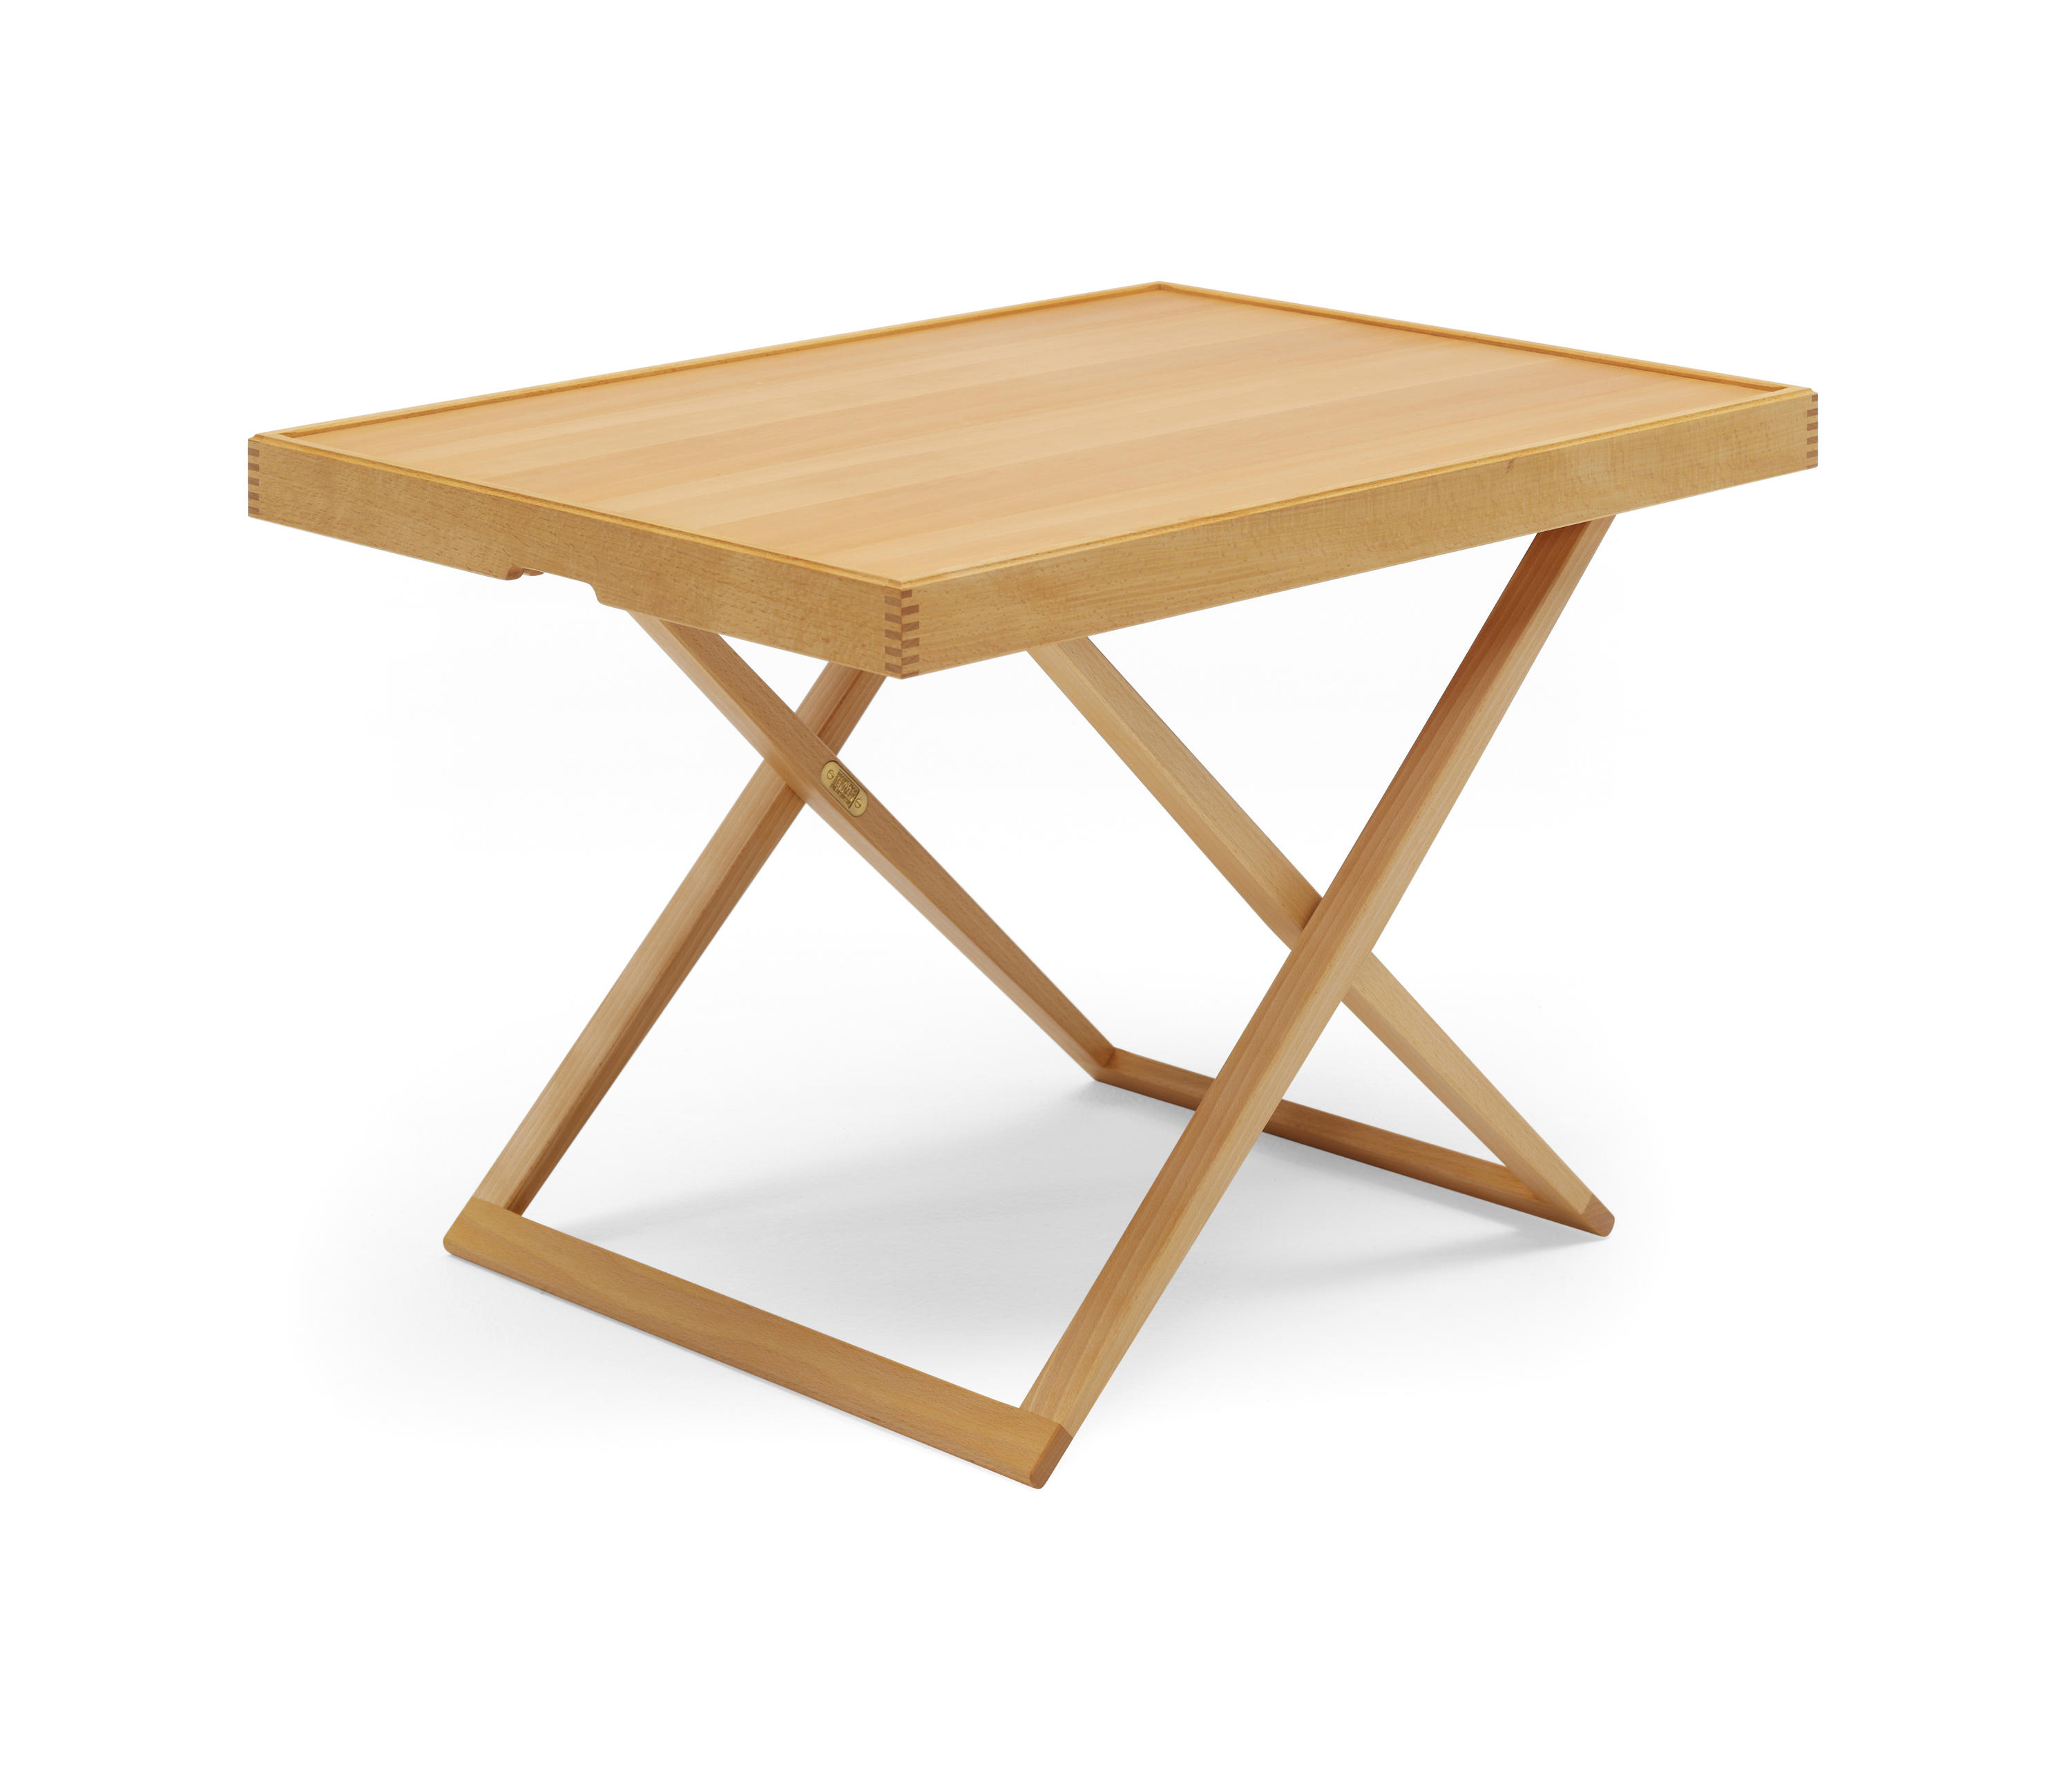 Costco Folding Tables | Plastic Tables Costco | Walmart 6 Ft Folding Table